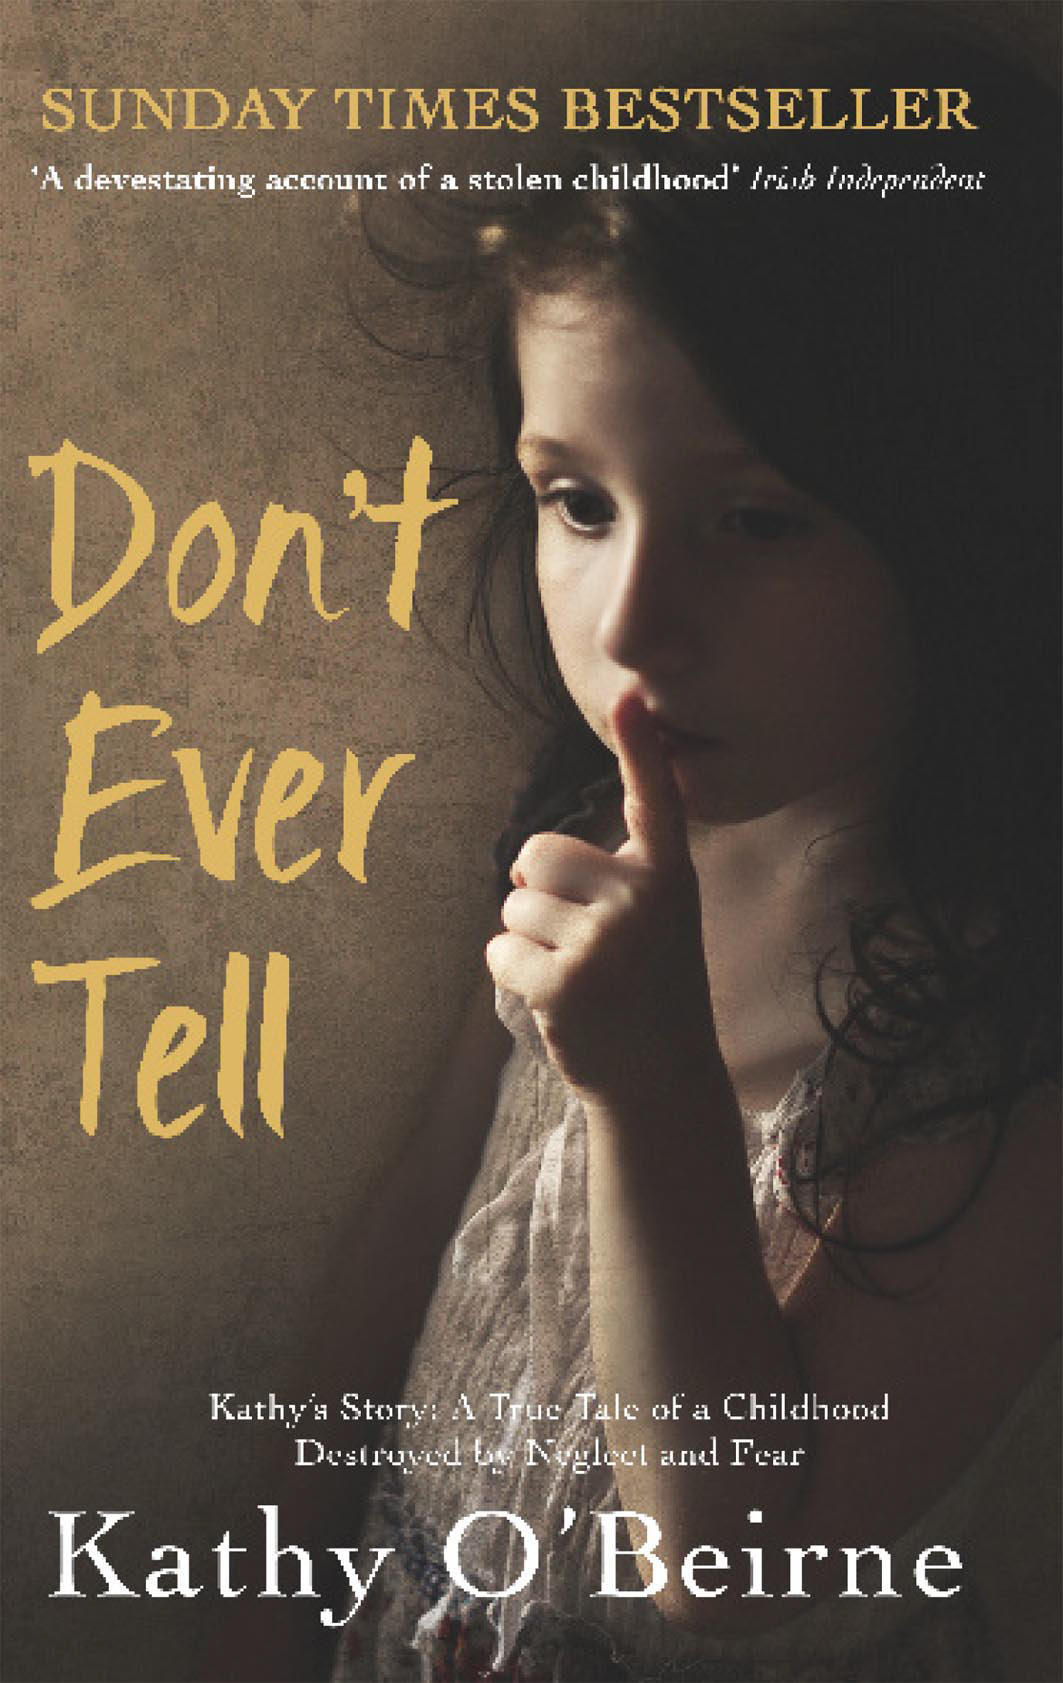 Don't Ever Tell Kathy's Story: A True Tale of a Childhood Destroyed by Neglect and Fear